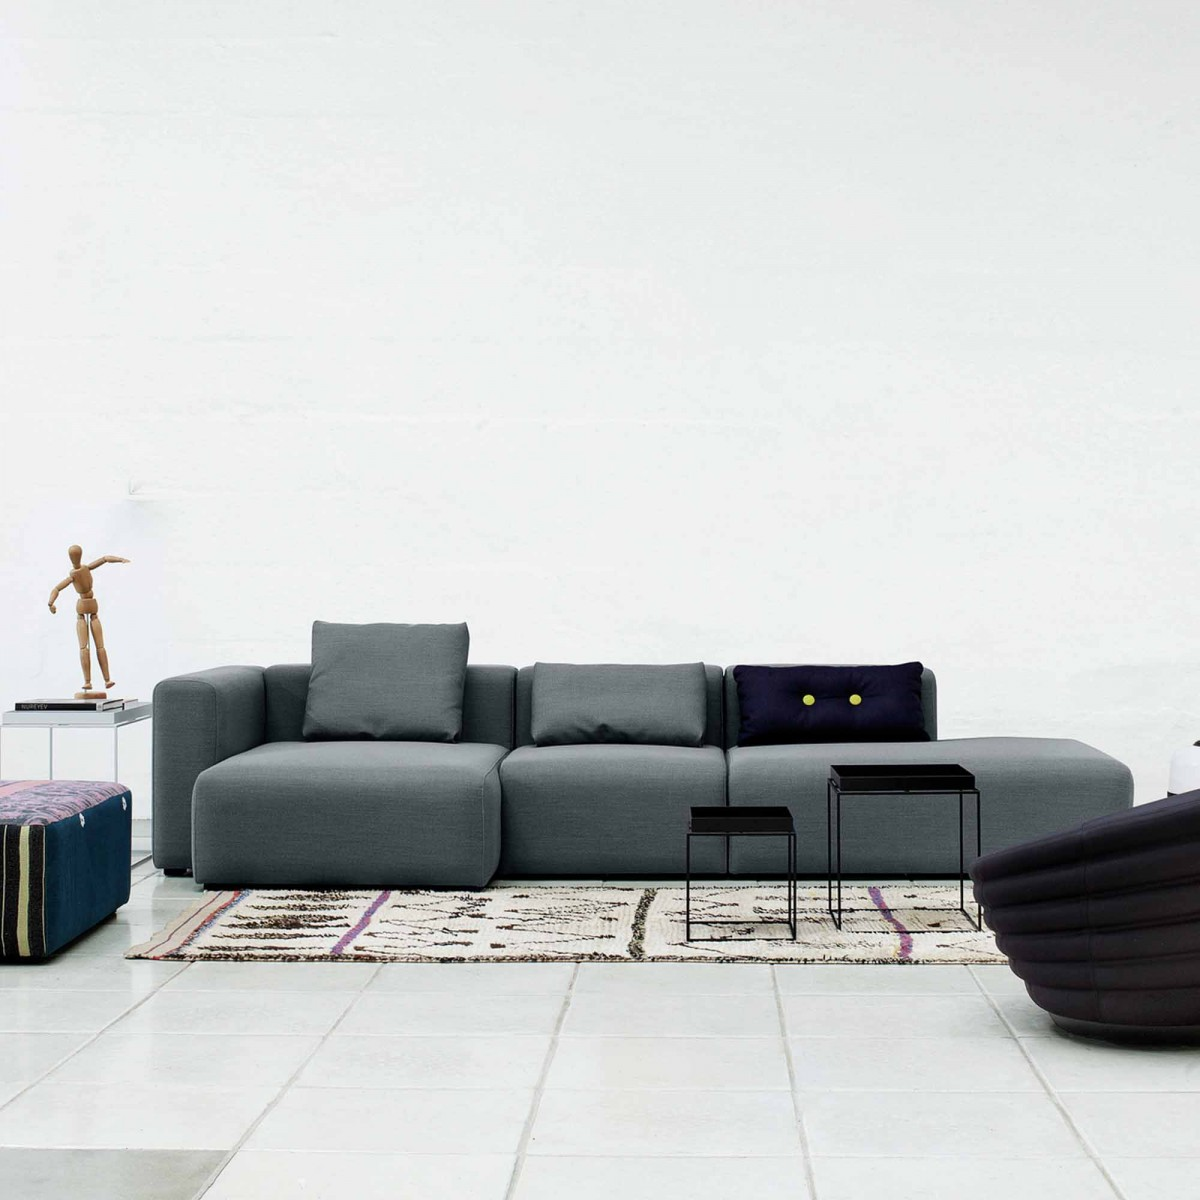 Delicieux MAGS Sofa   Steelcut Trio 153. Loading Zoom